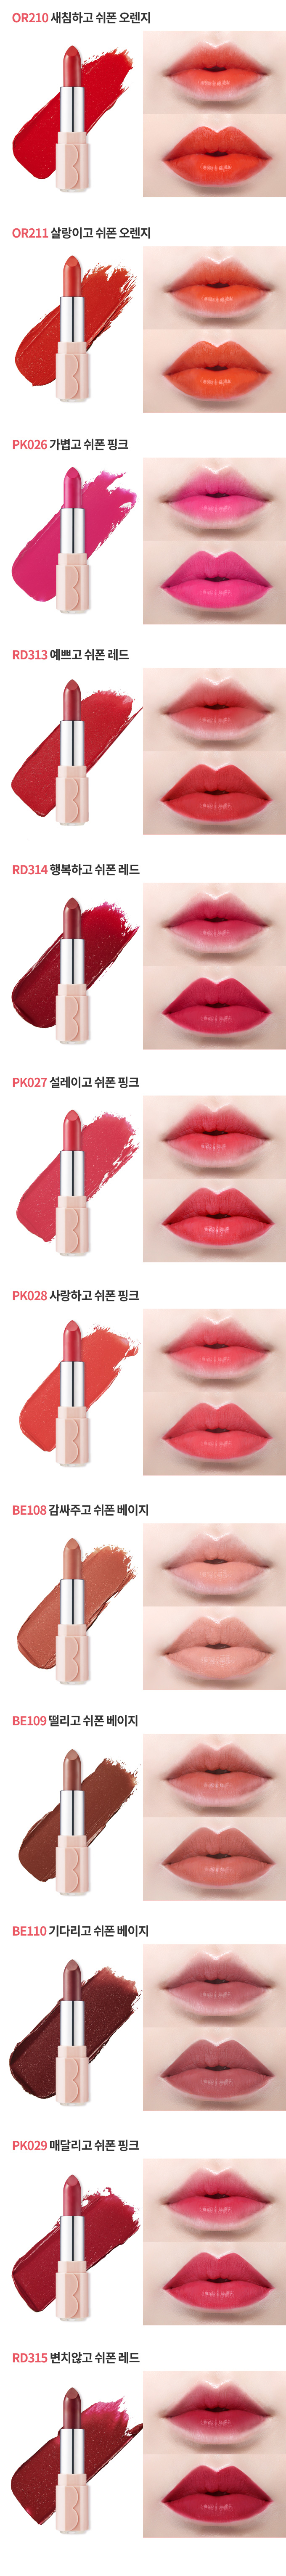 Etude Dear My Blooming Lips Talk - Chiffon